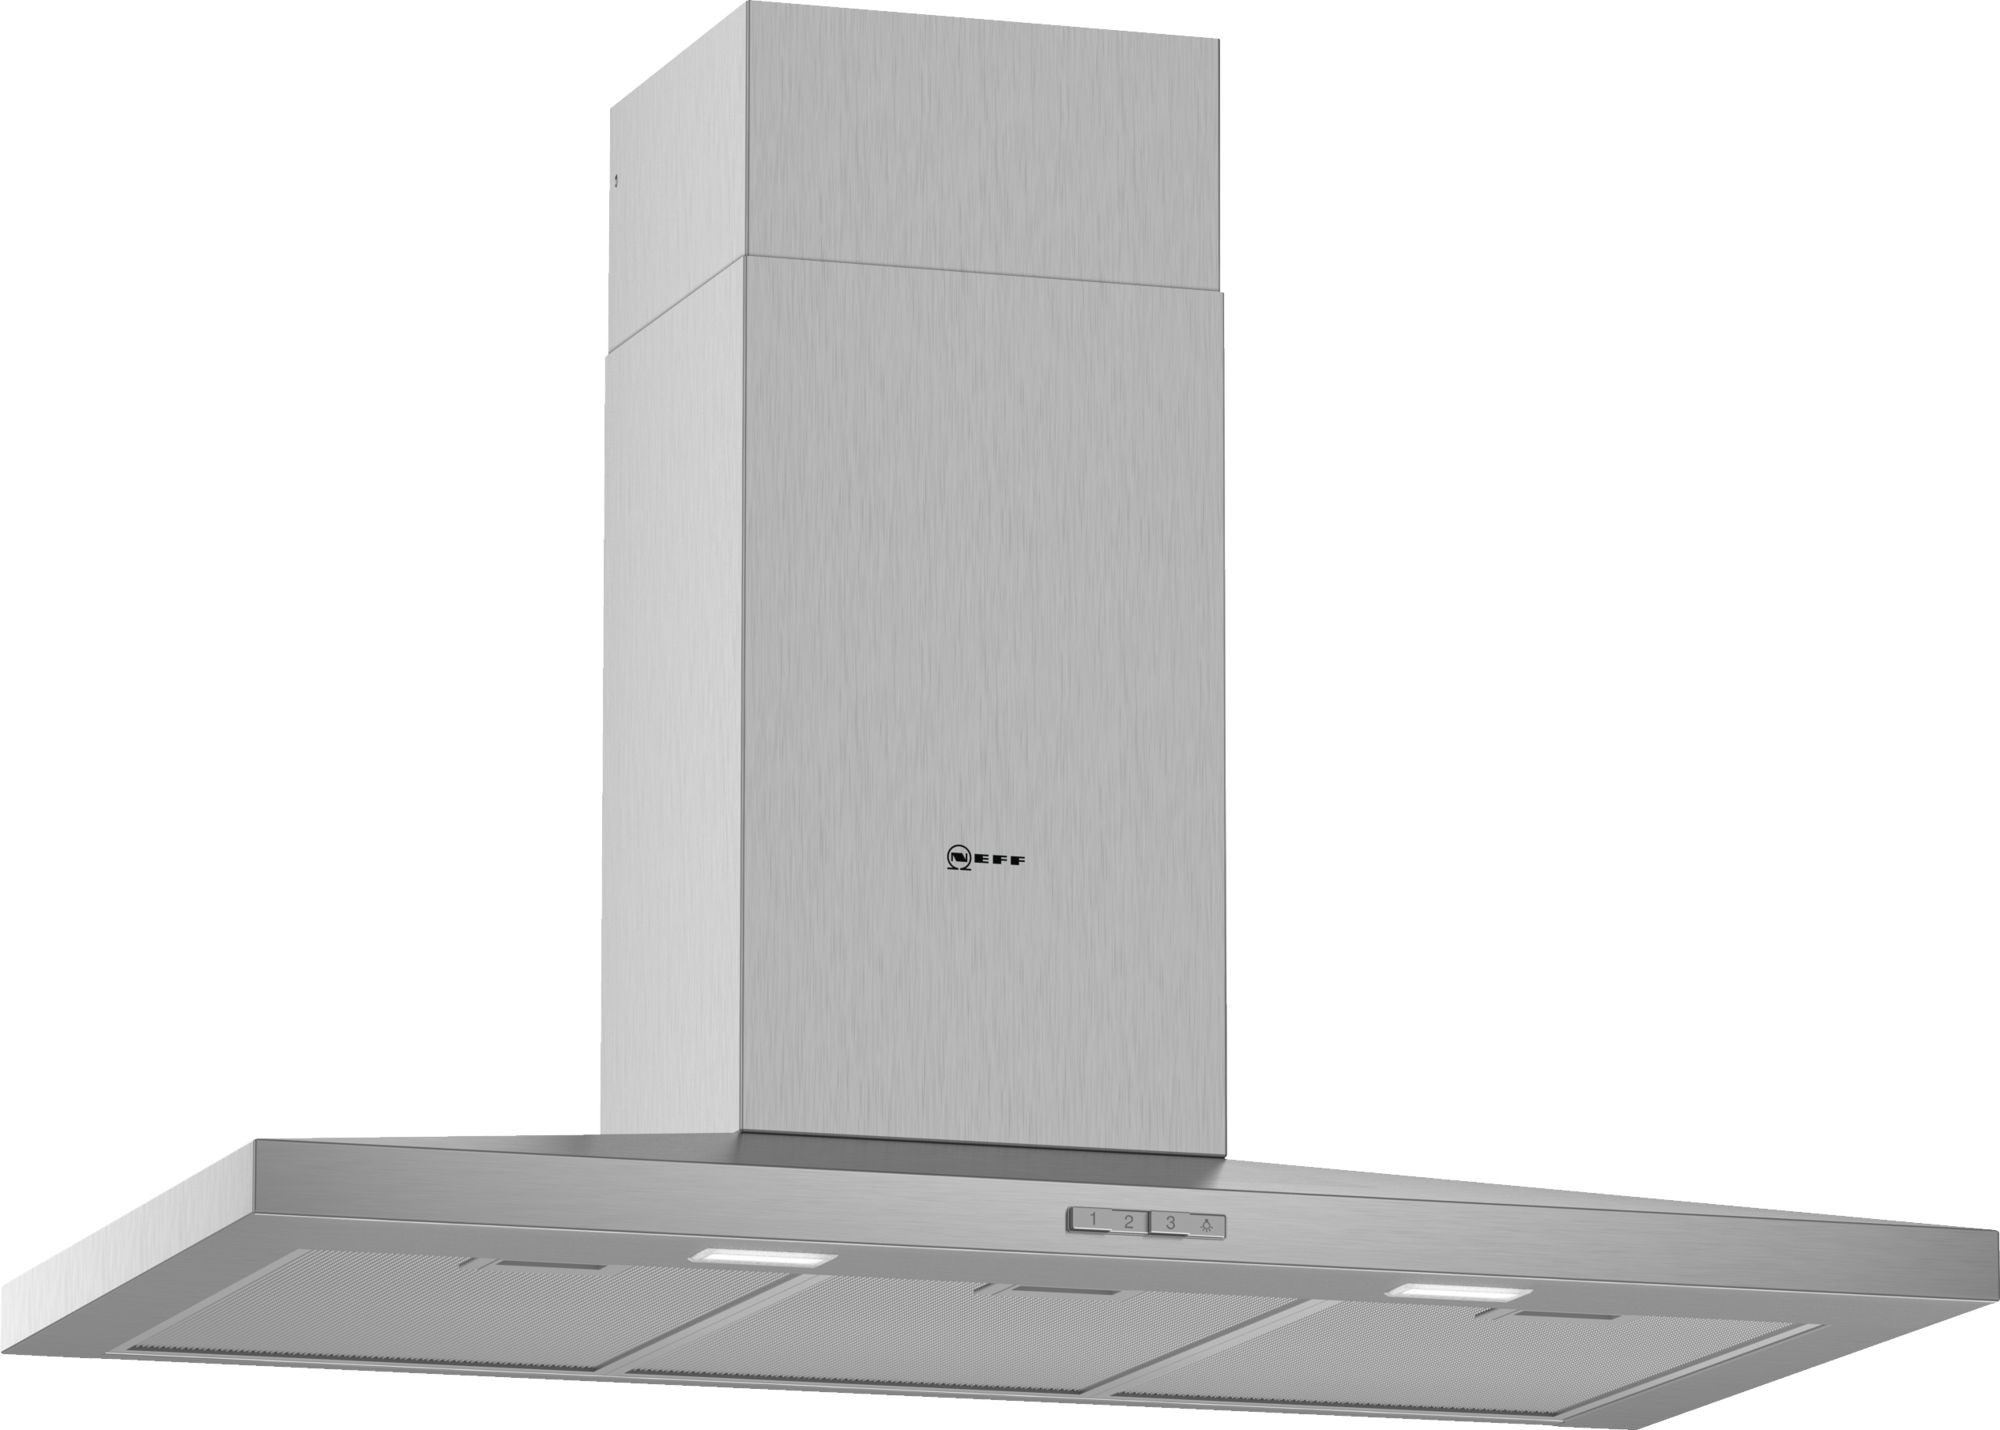 Neff N30 90cm Stainless Steel Pyramid Chimney Hood D92QBC0N0B